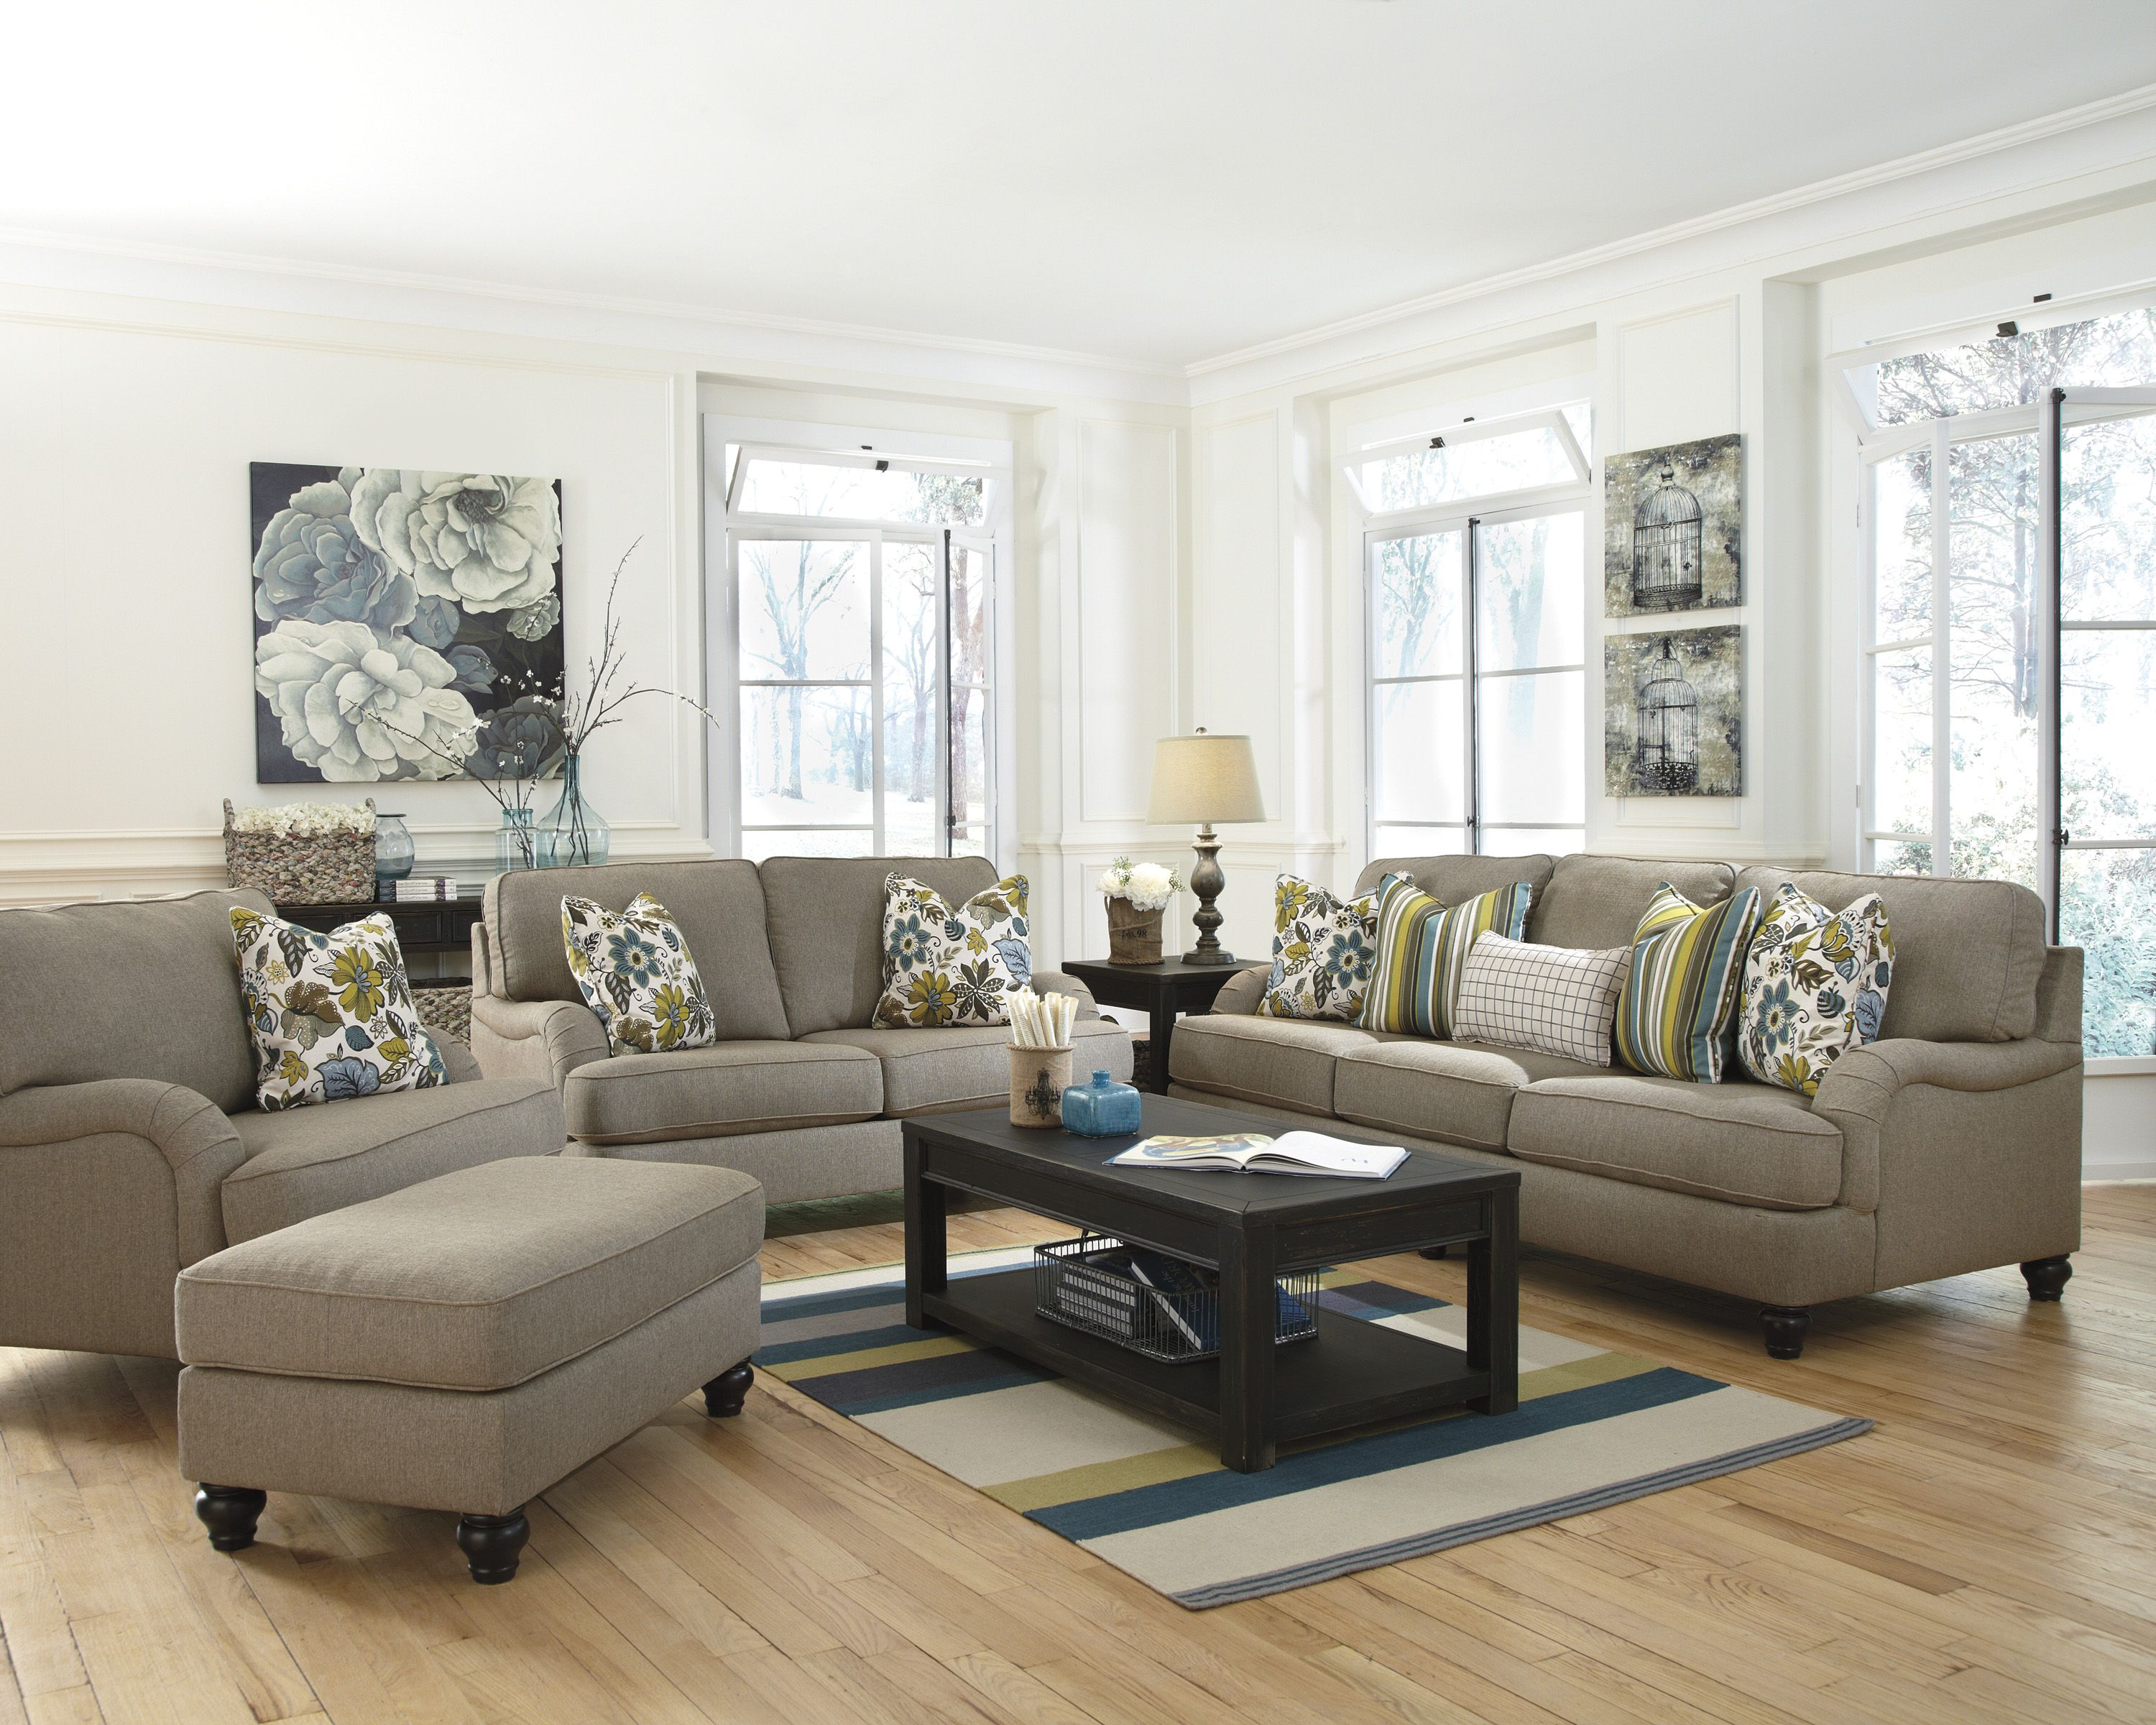 beautiful accent colors in this vintage inspired living room set rh pinterest com